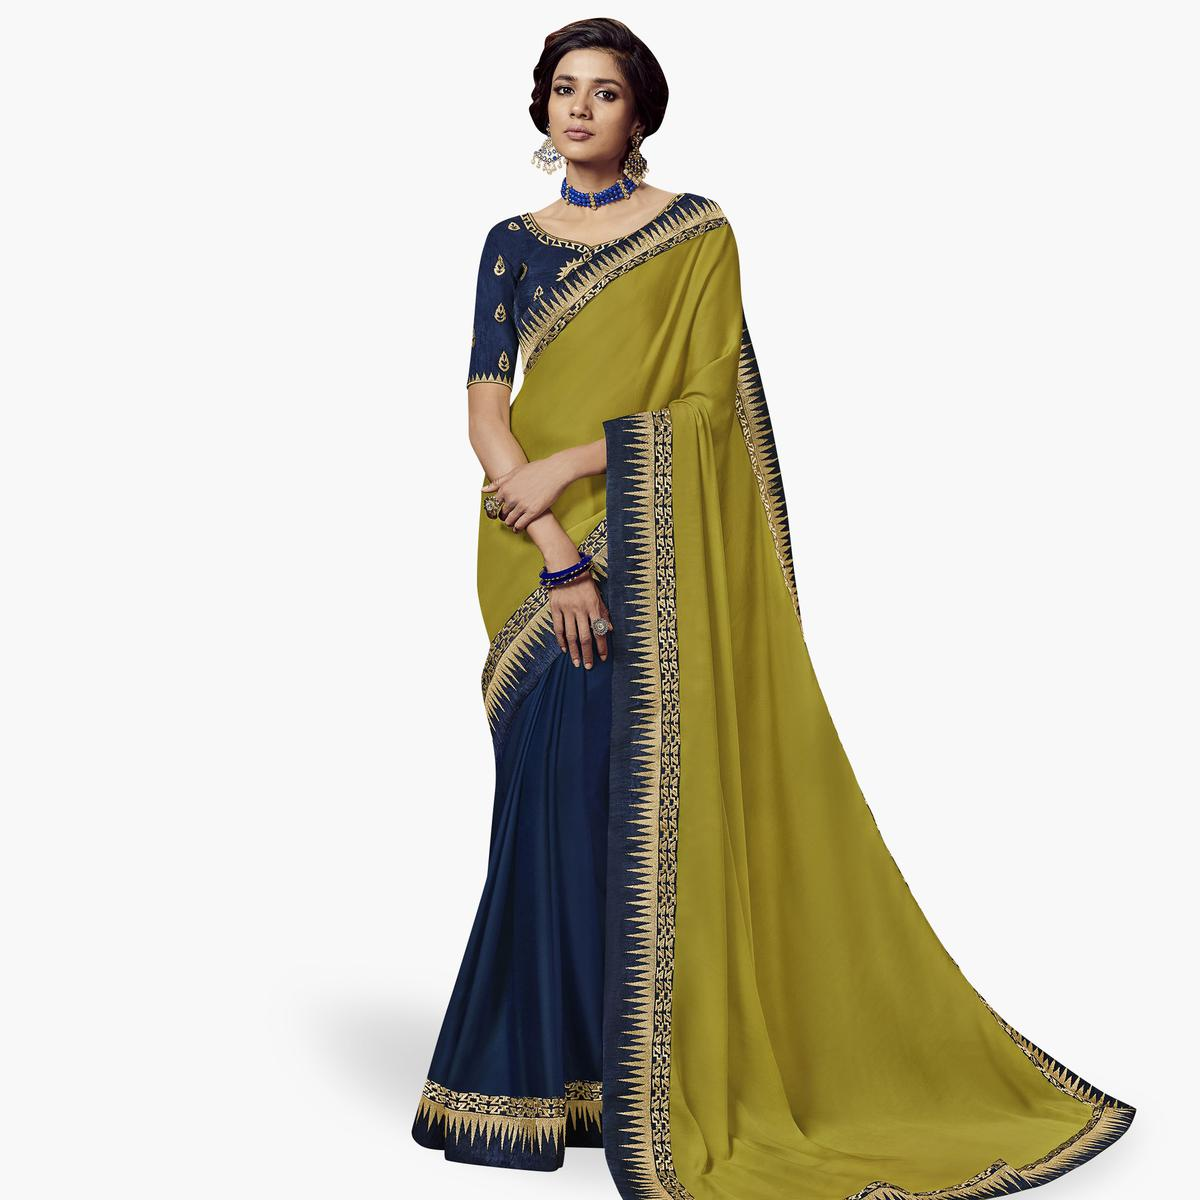 Pleasant Green-Navy Blue Colored Partywear Embroidered Satin Silk Saree